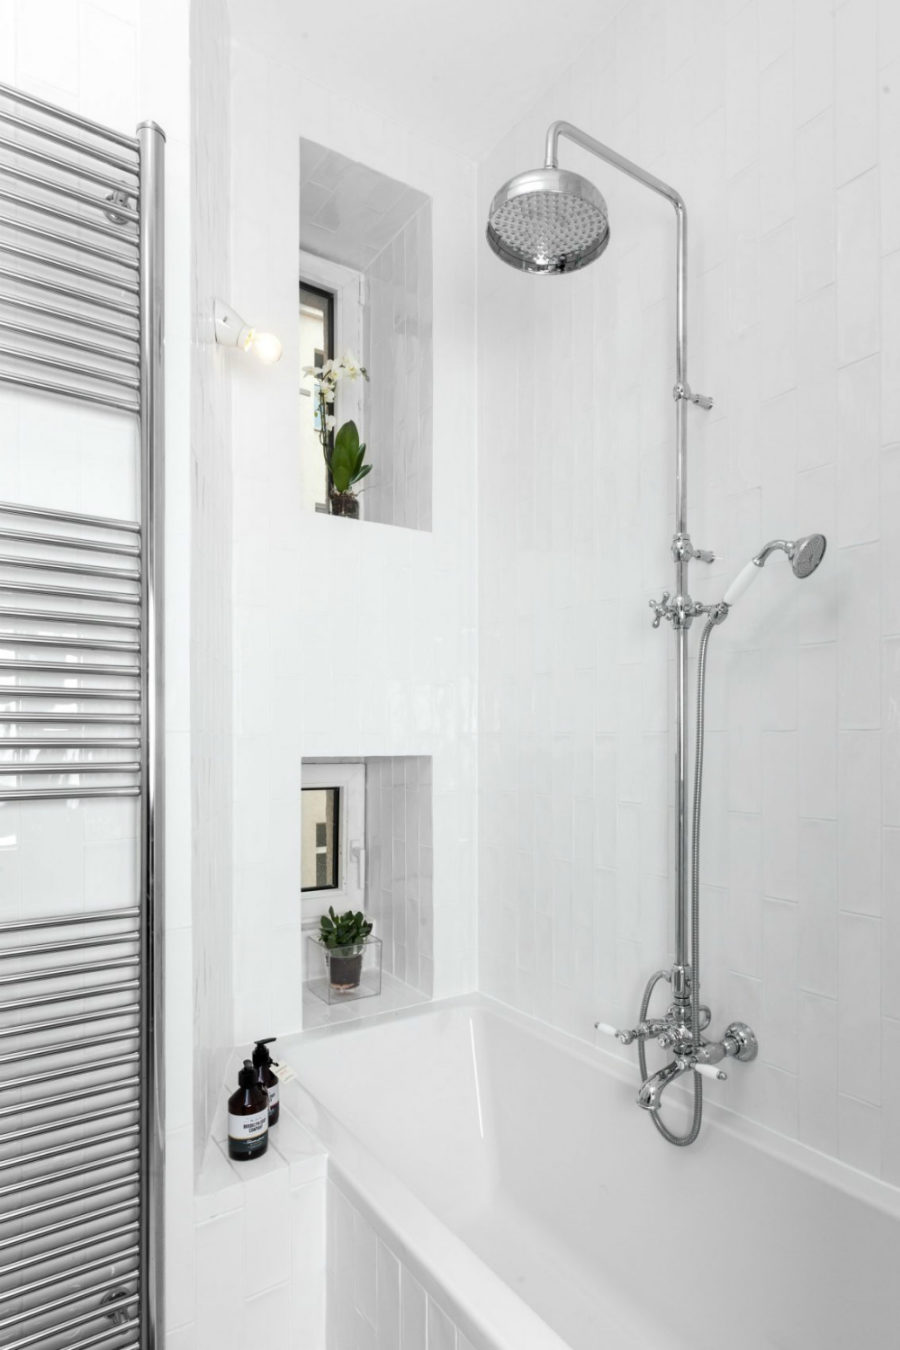 A bathtub also has a shower